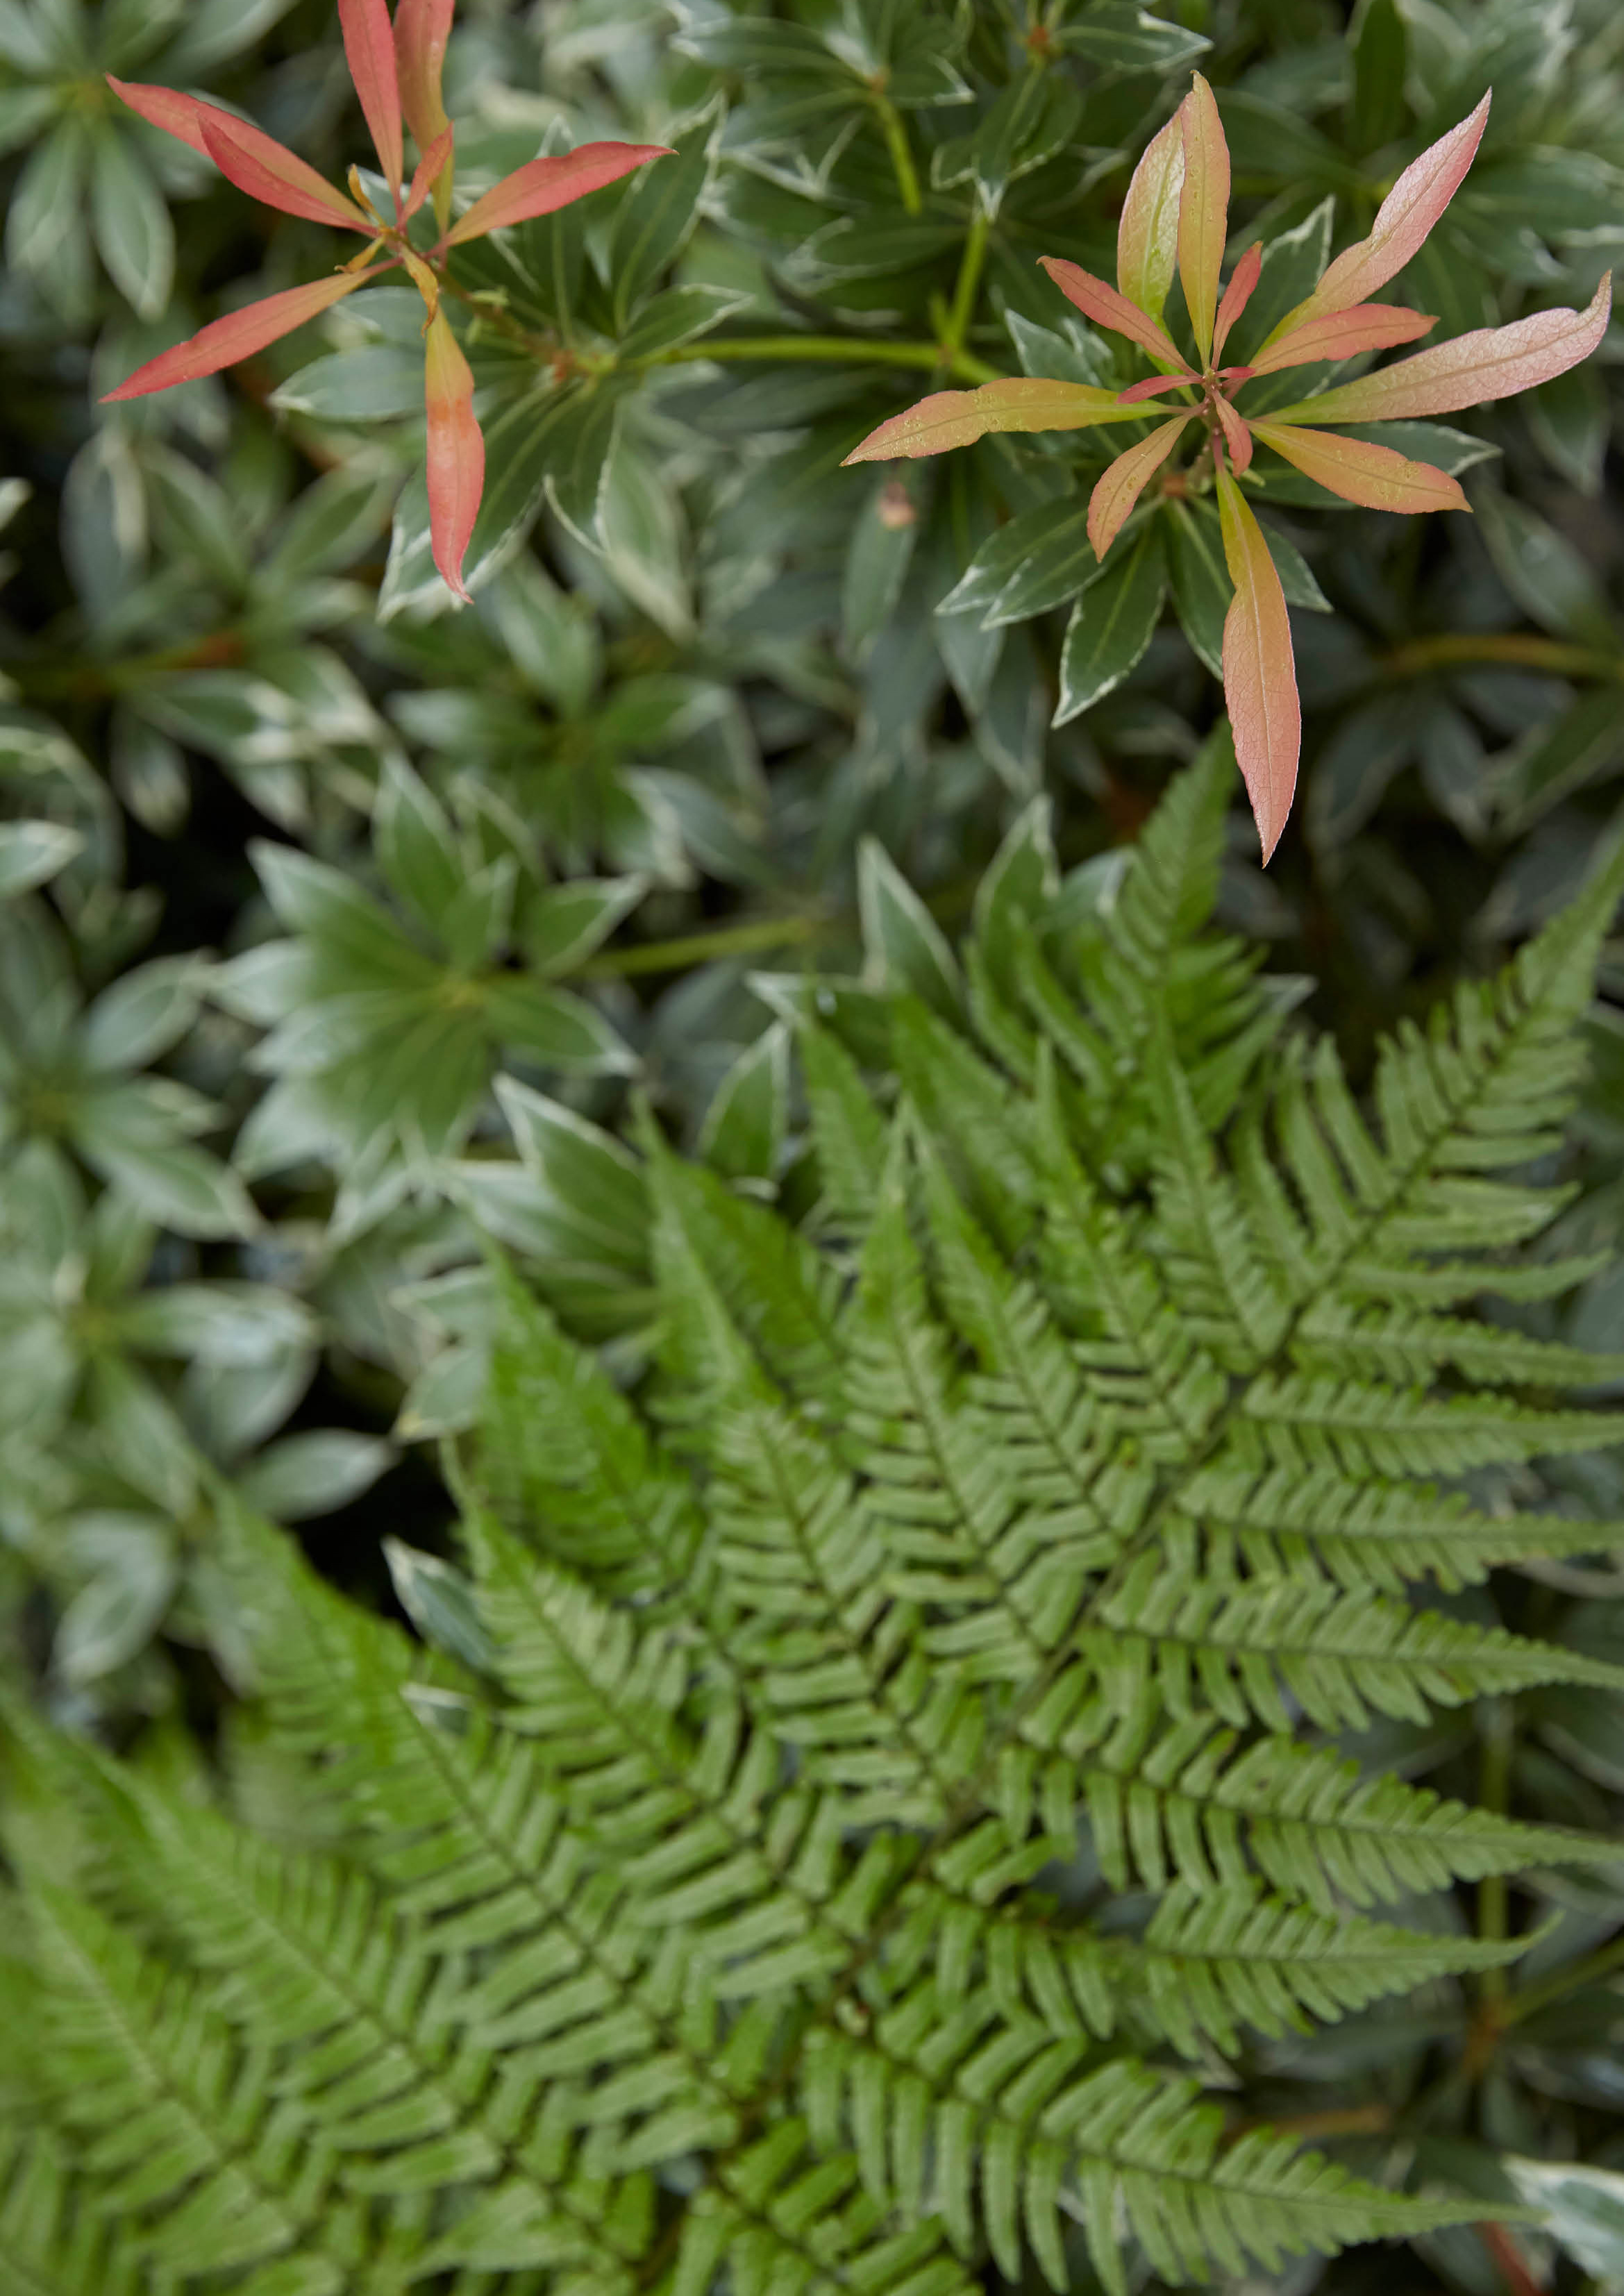 Dryopteris erythrosora & Pieris japonica 'Moutain Fire'